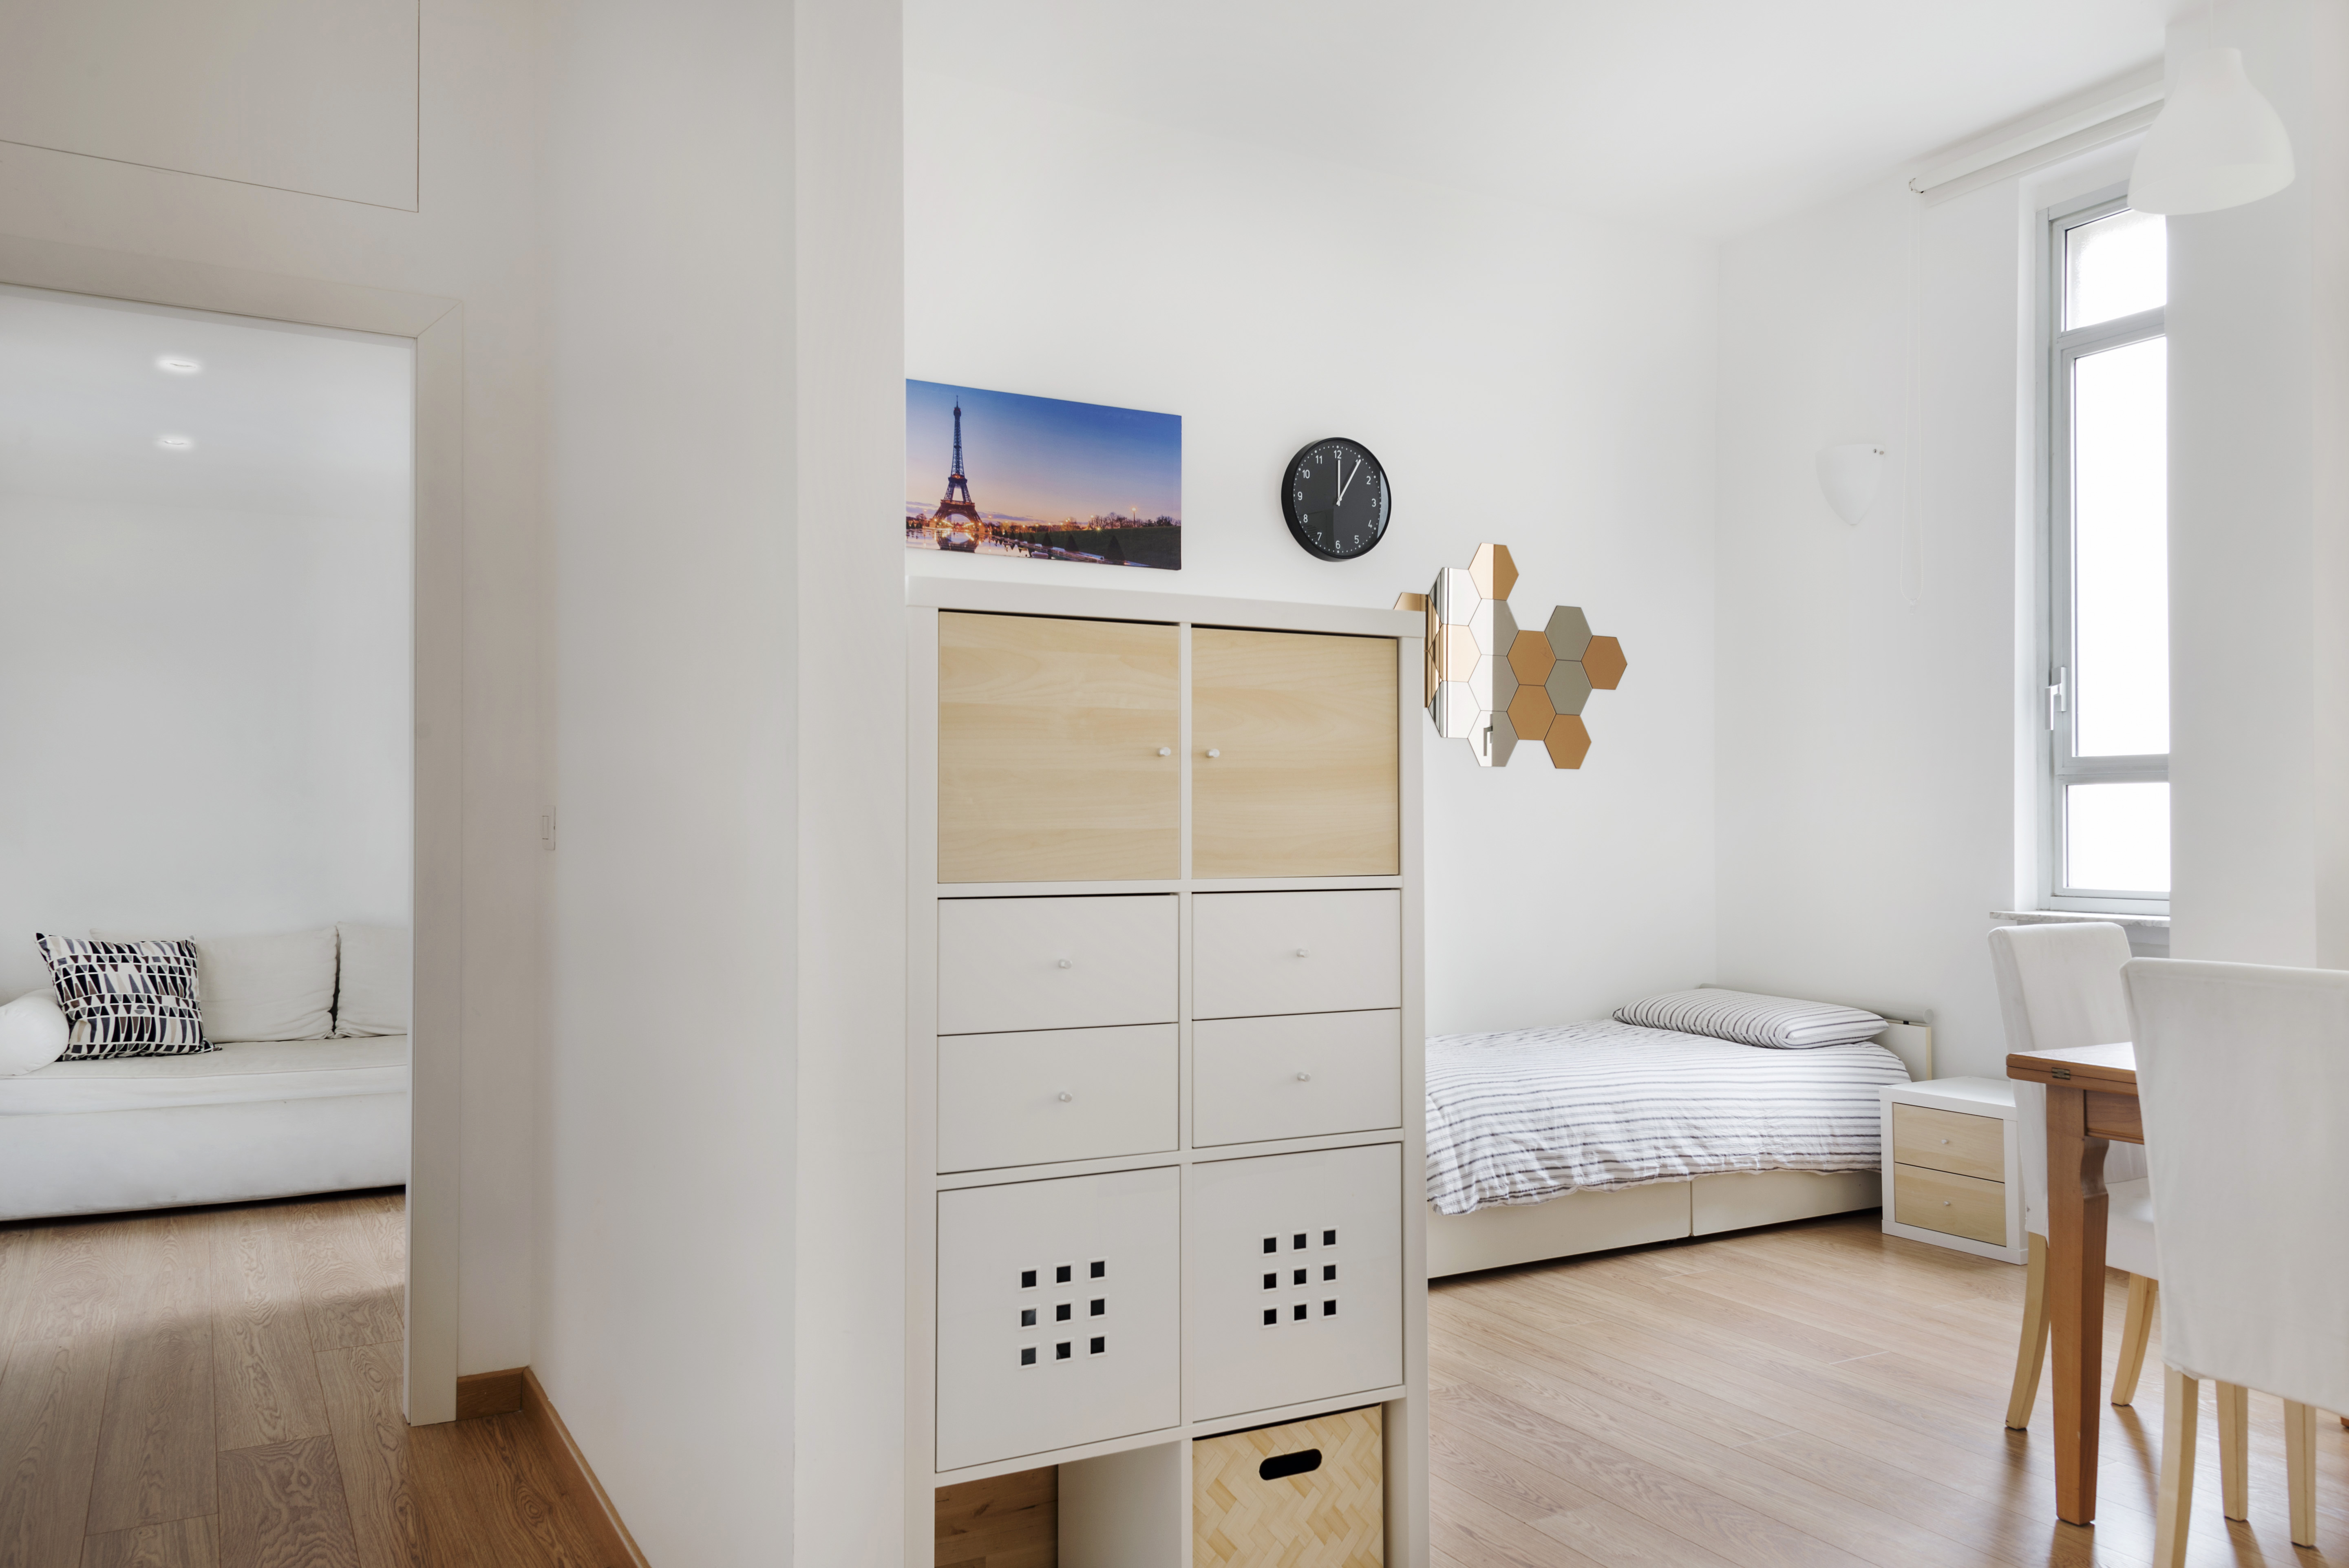 Student Accomodation for rent in double room in Viale Papiniano, 43, in Milano, Italy